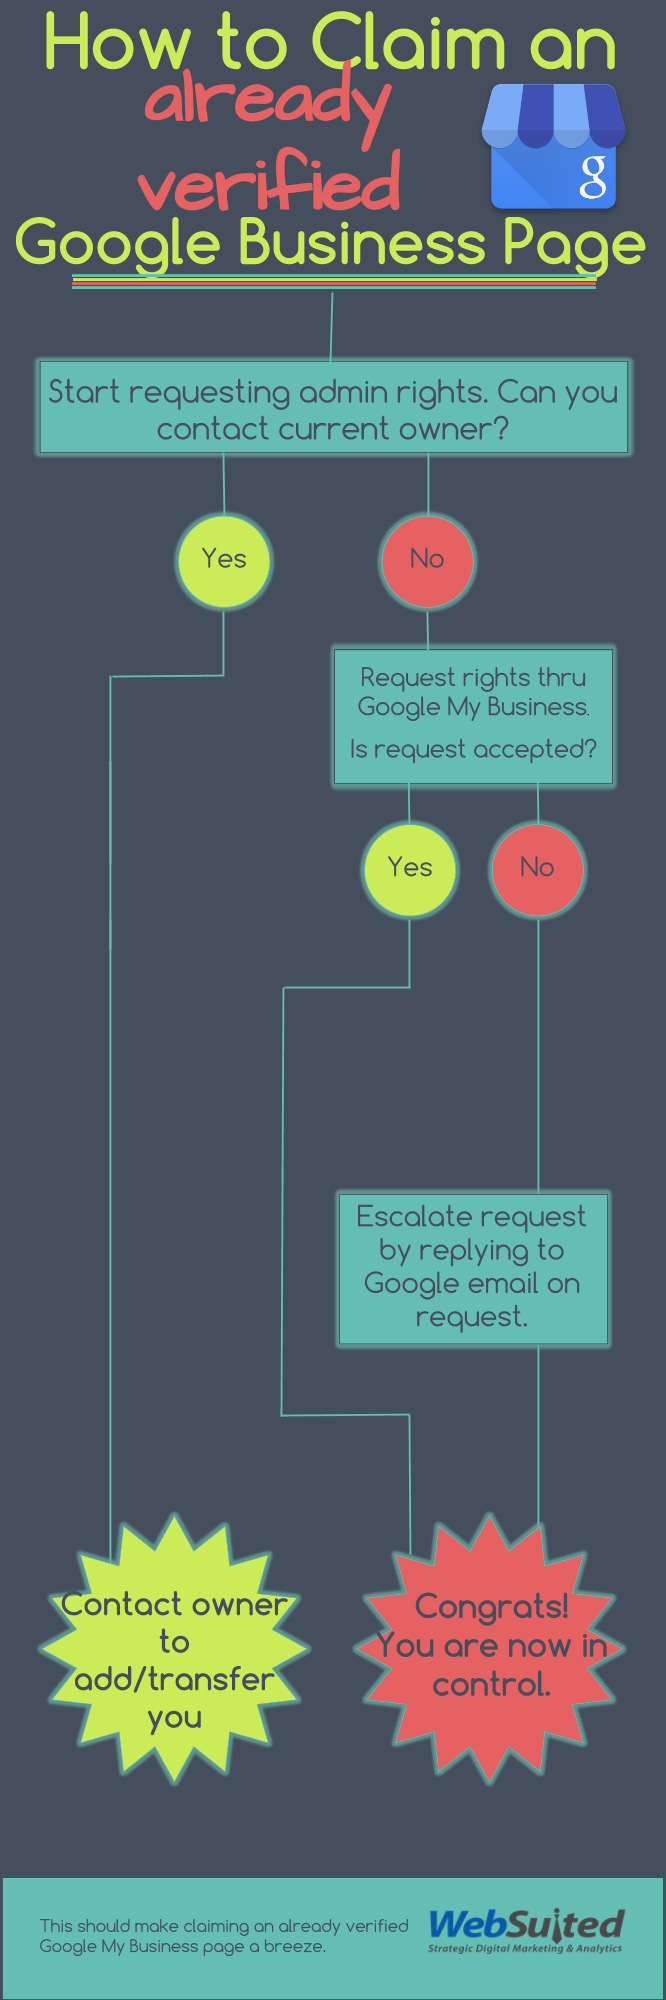 How to Claim an Already Verified Google My Business Page (INFOGRAPHIC)